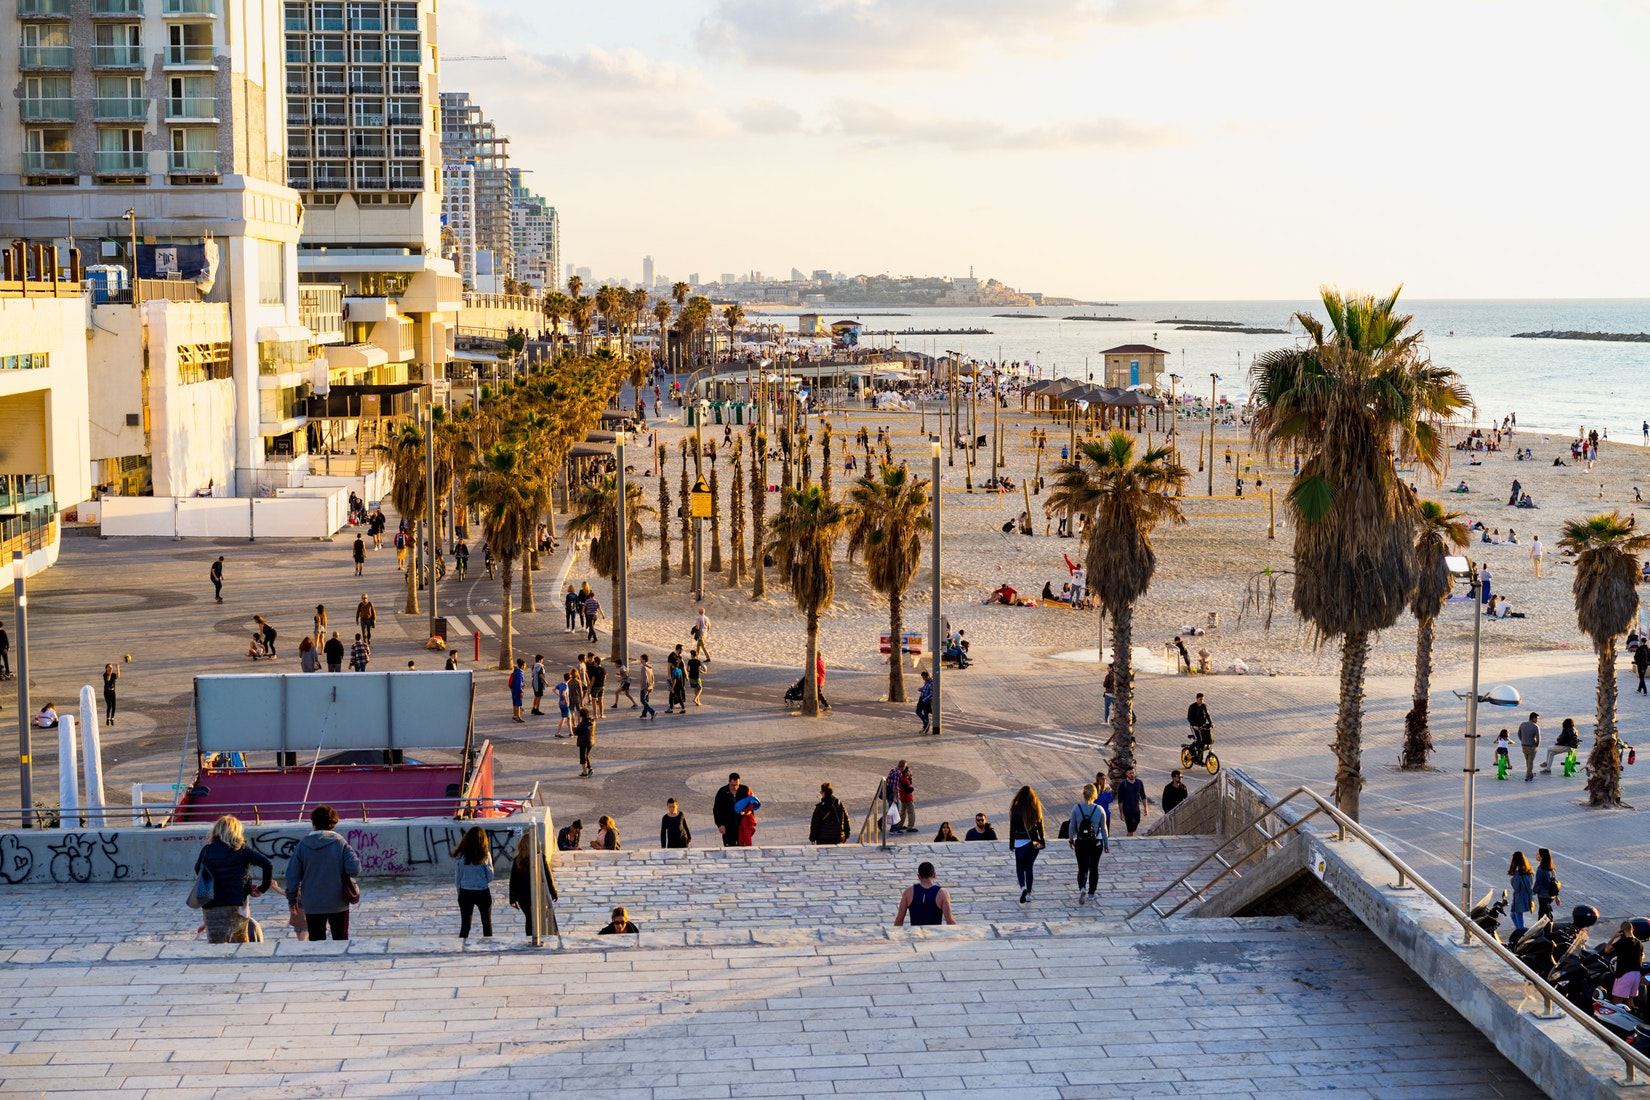 View of the Mediterranean beachfront in Tel Aviv, Israel